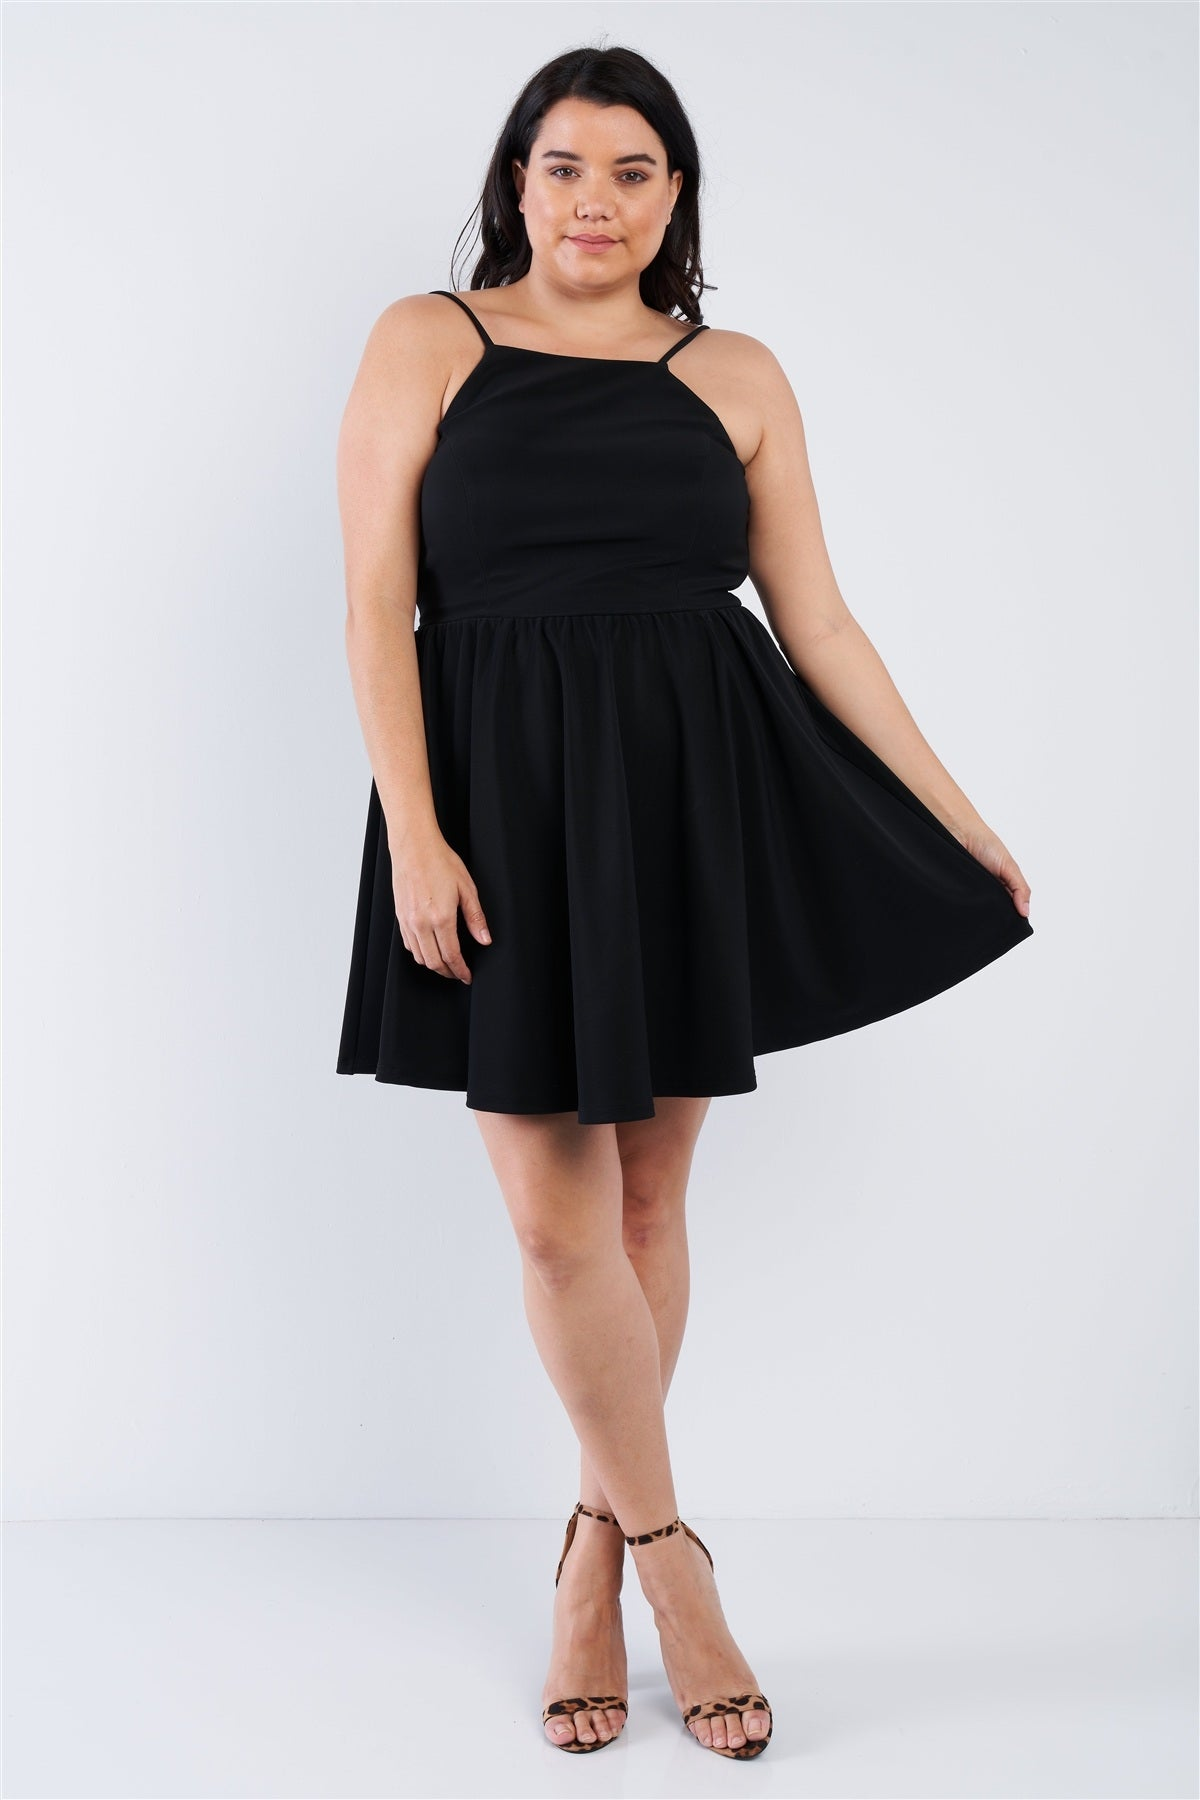 slaythedaybydcole,Plus Size Fit N Flare Mini Dress,Slay The Day By D Cole,